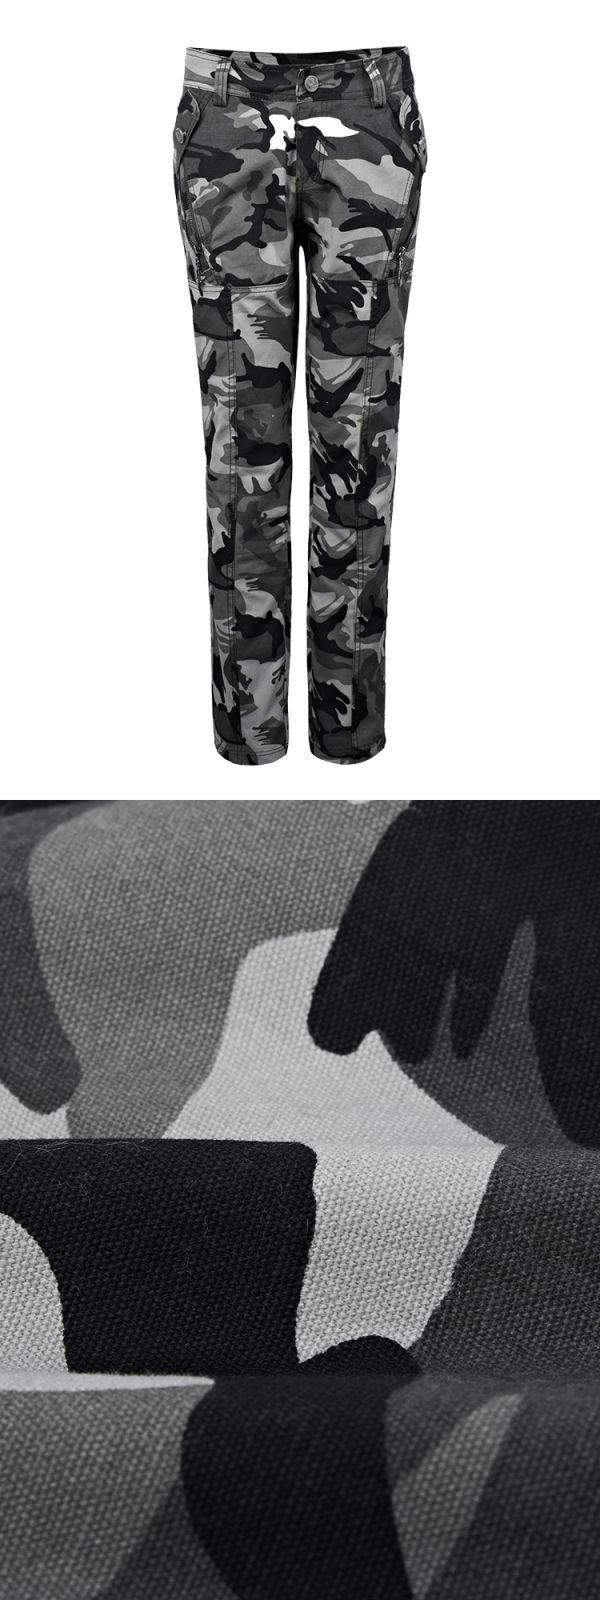 Casual pocket camouflage skinny women cargo trousers pants pants trousers american english #linen #trousers #pants #pants #to #trousers #trousers #or #pants #trousers #pants #images